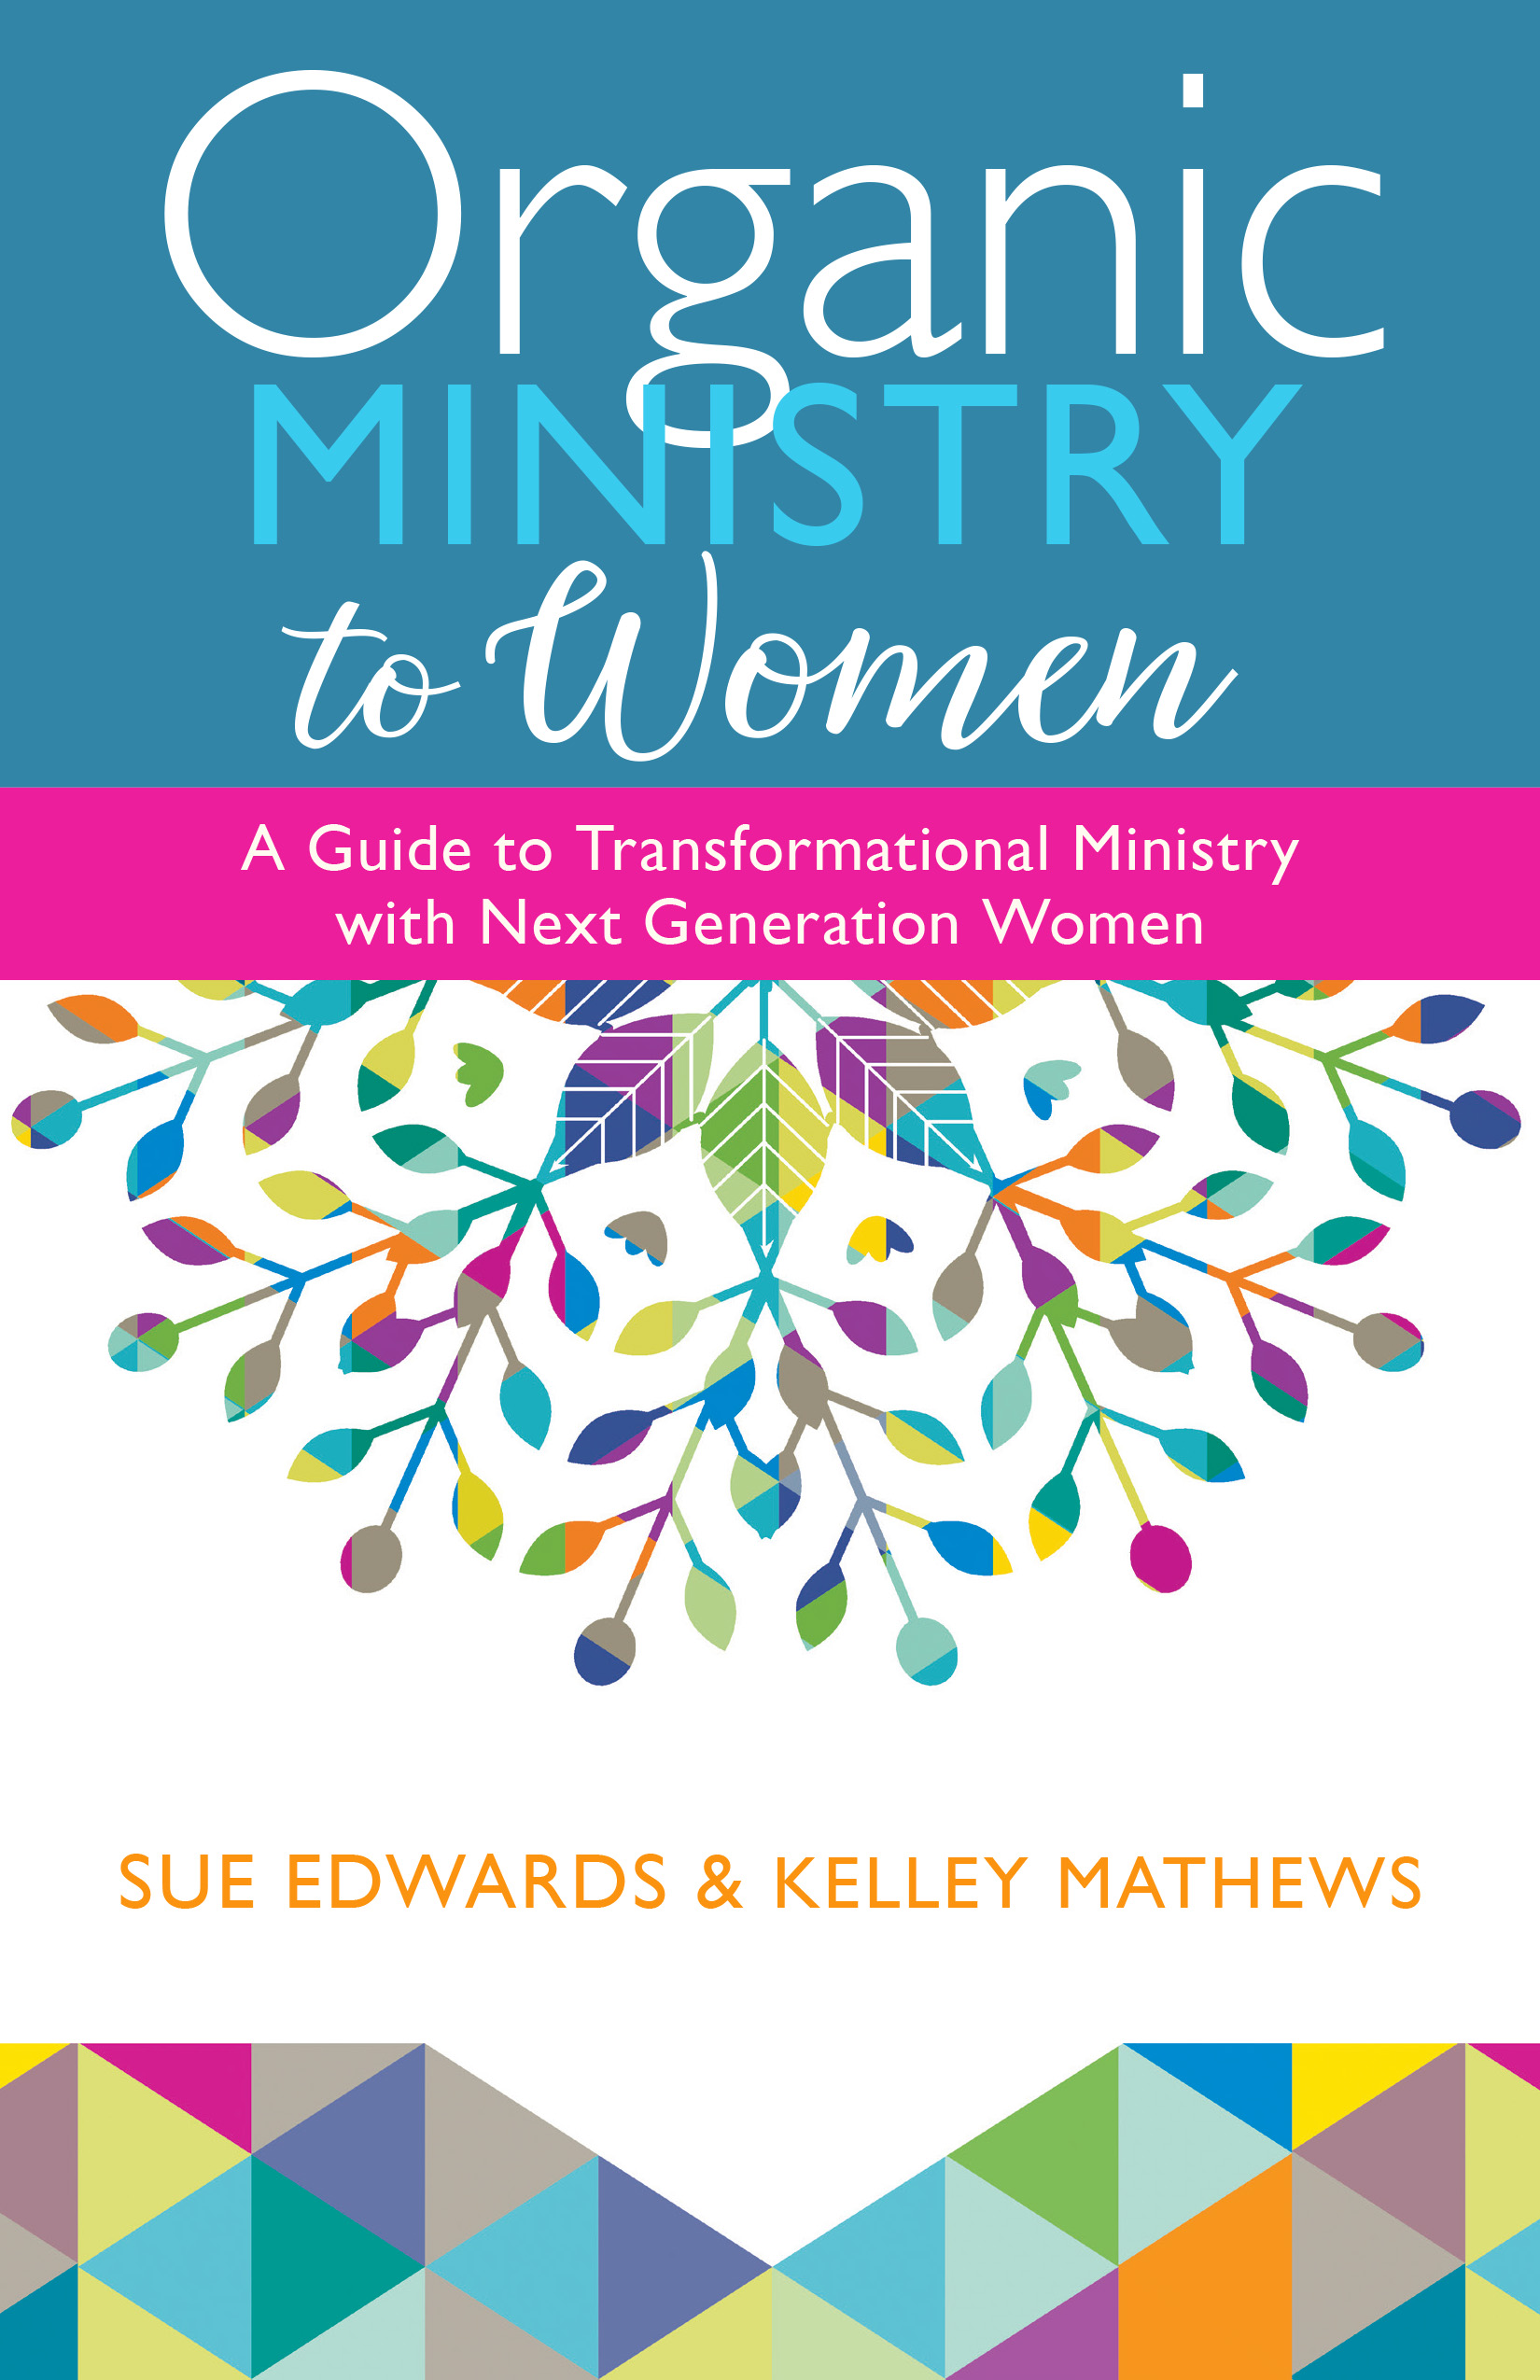 Organic Ministry to Women